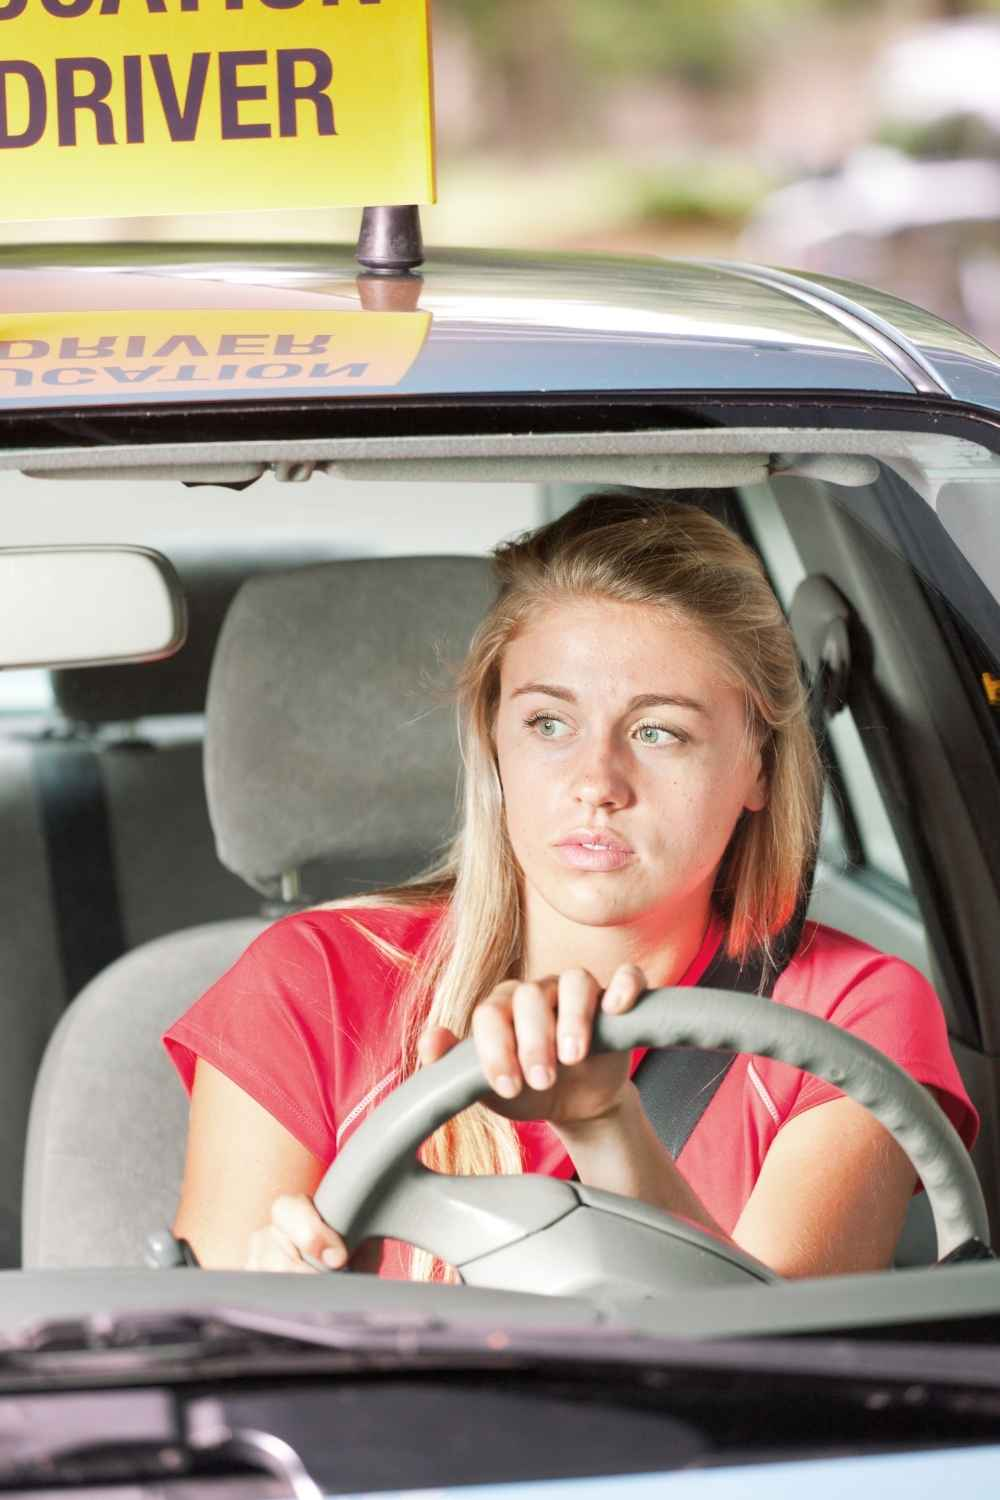 girl behind wheel of car learning how to drive with teen drivers eduction